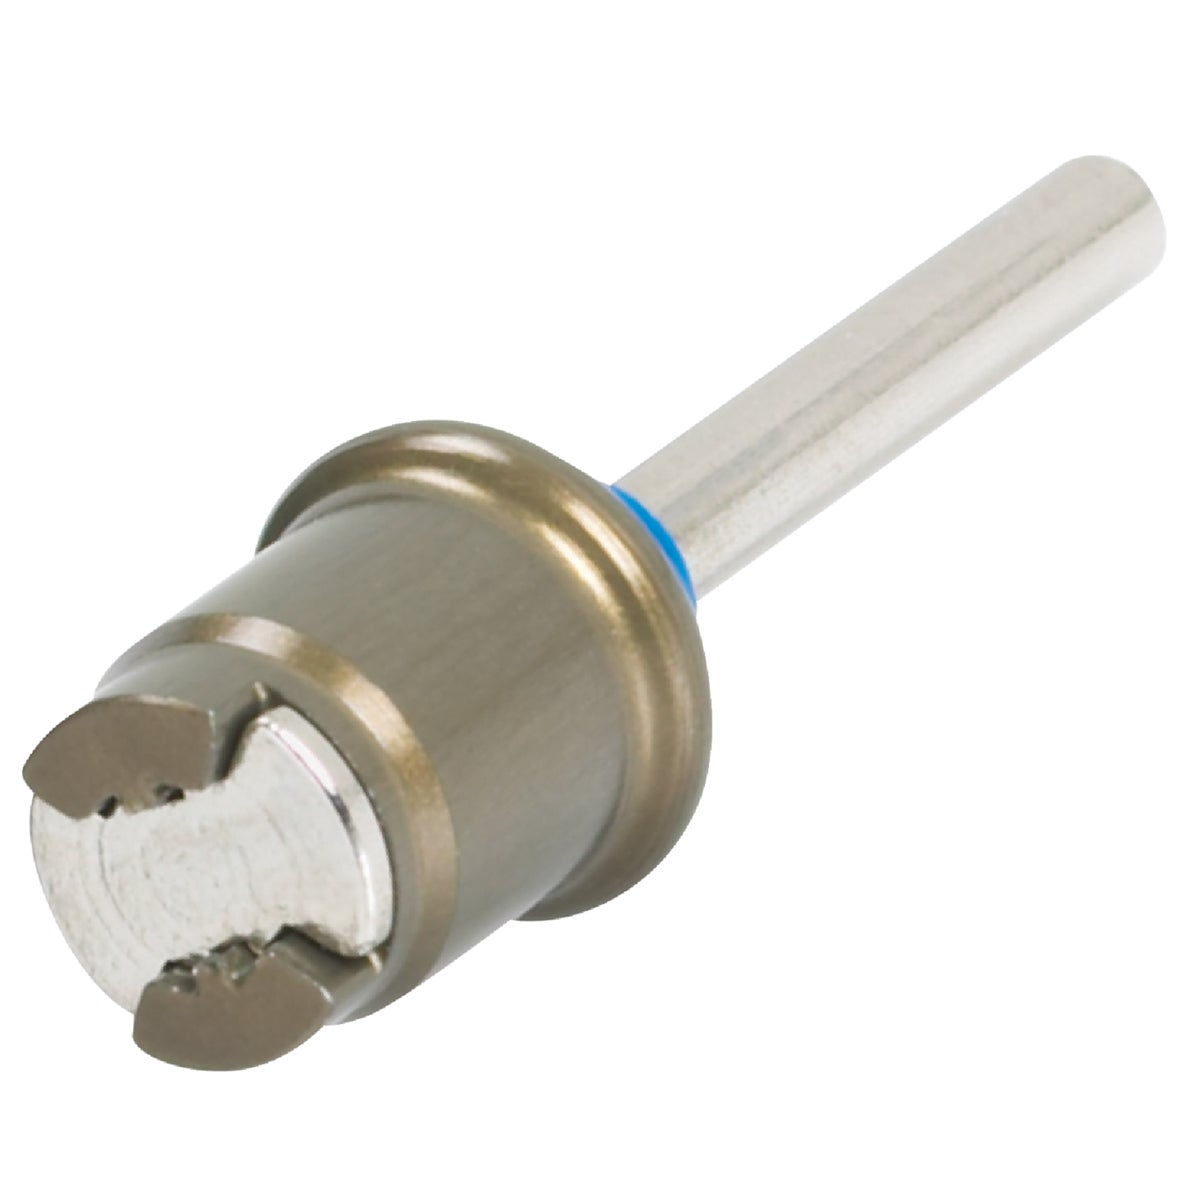 EZ LOCK MANDREL